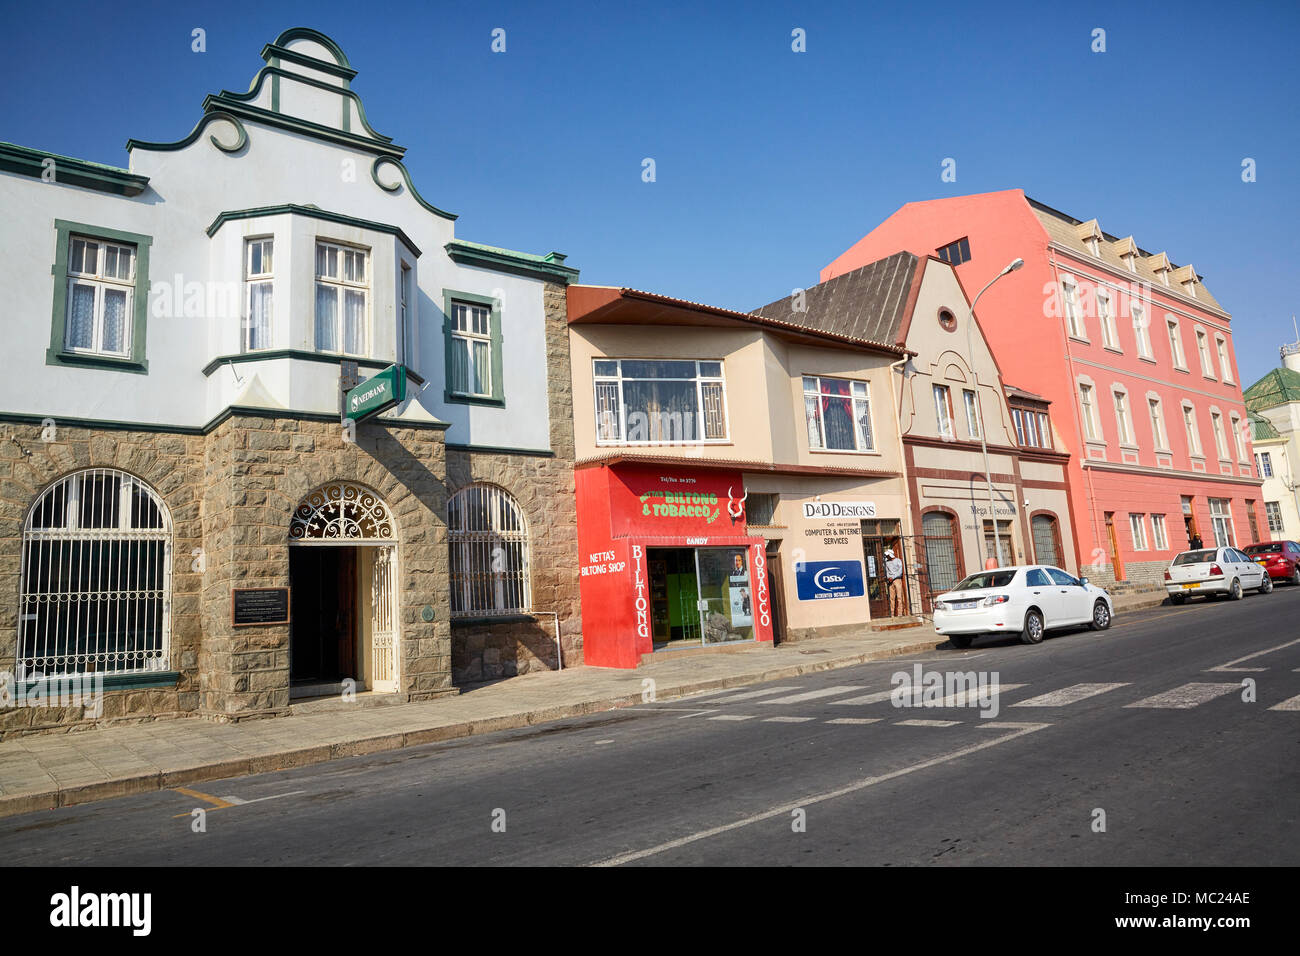 Biltong and Tobacco store on Bismarck Street in Luderitz, Namibia, Africa - Stock Image